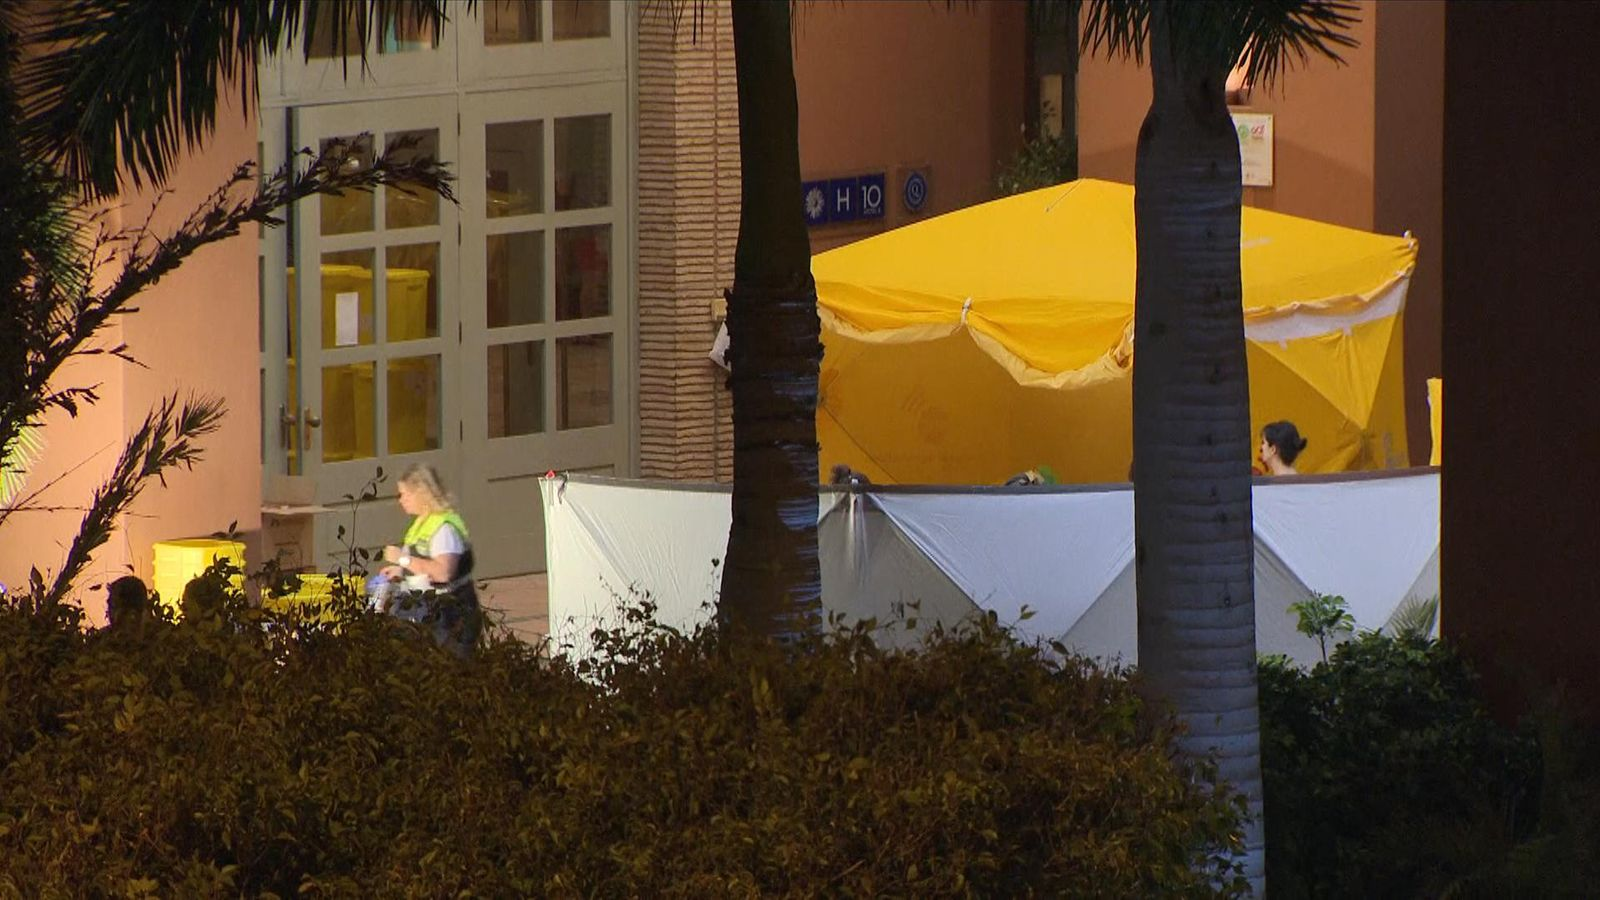 Coronavirus: Confusion for Britons quarantined in Tenerife hotel - Sky News